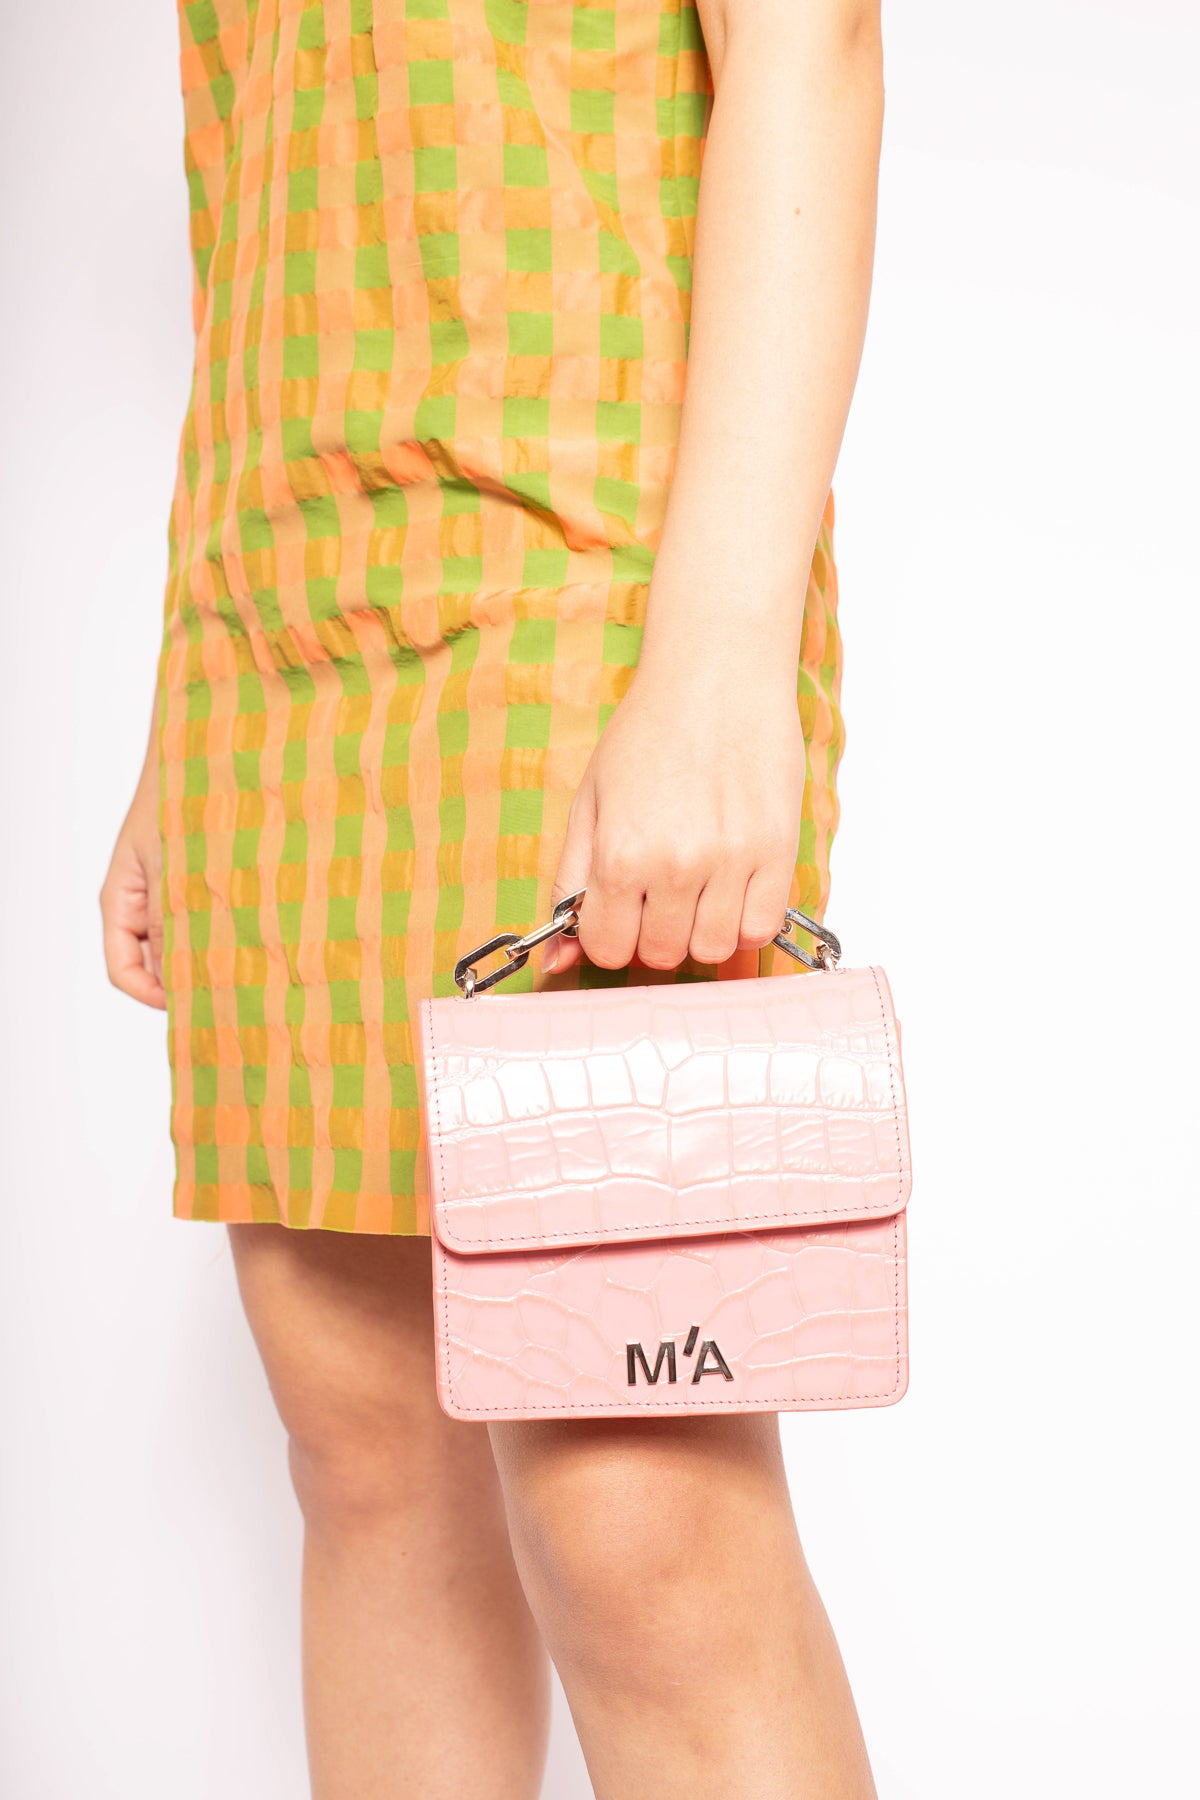 MINI CHAIN BAG IN PINK - marques-almeida-dev